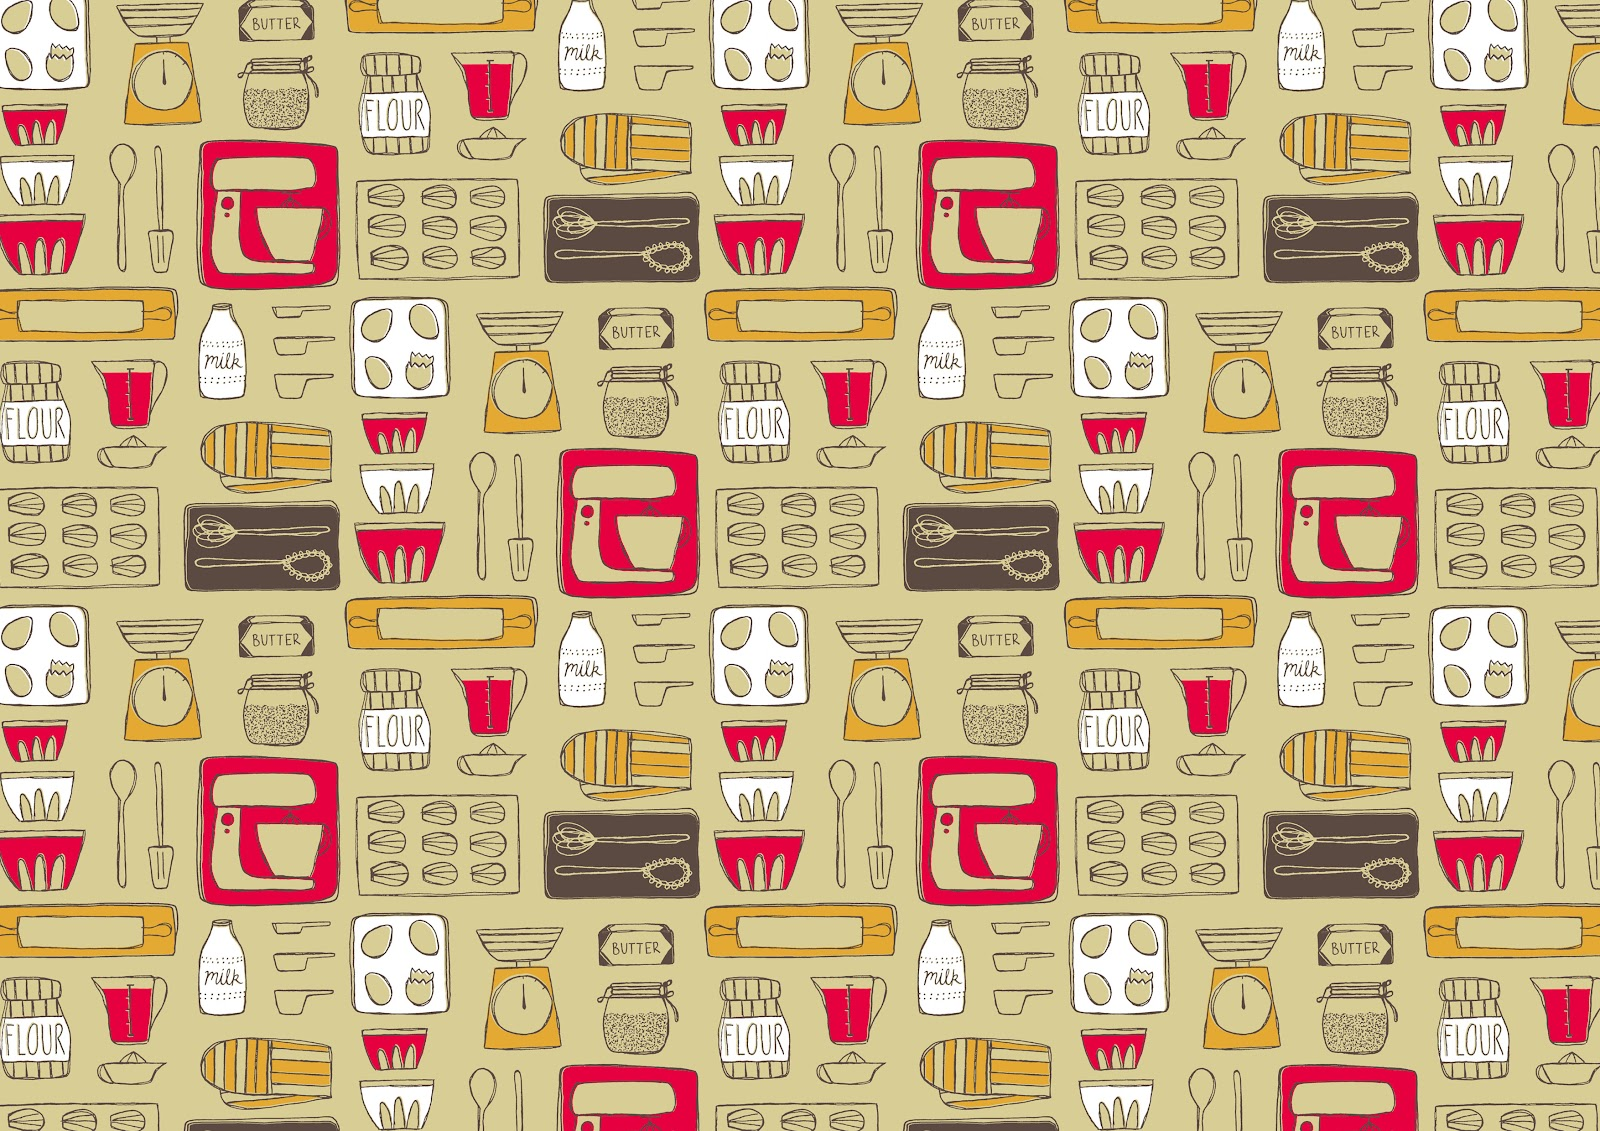 Wallpaper Designs For Kitchens Retro Diner Wallpaper Wallpapersafari